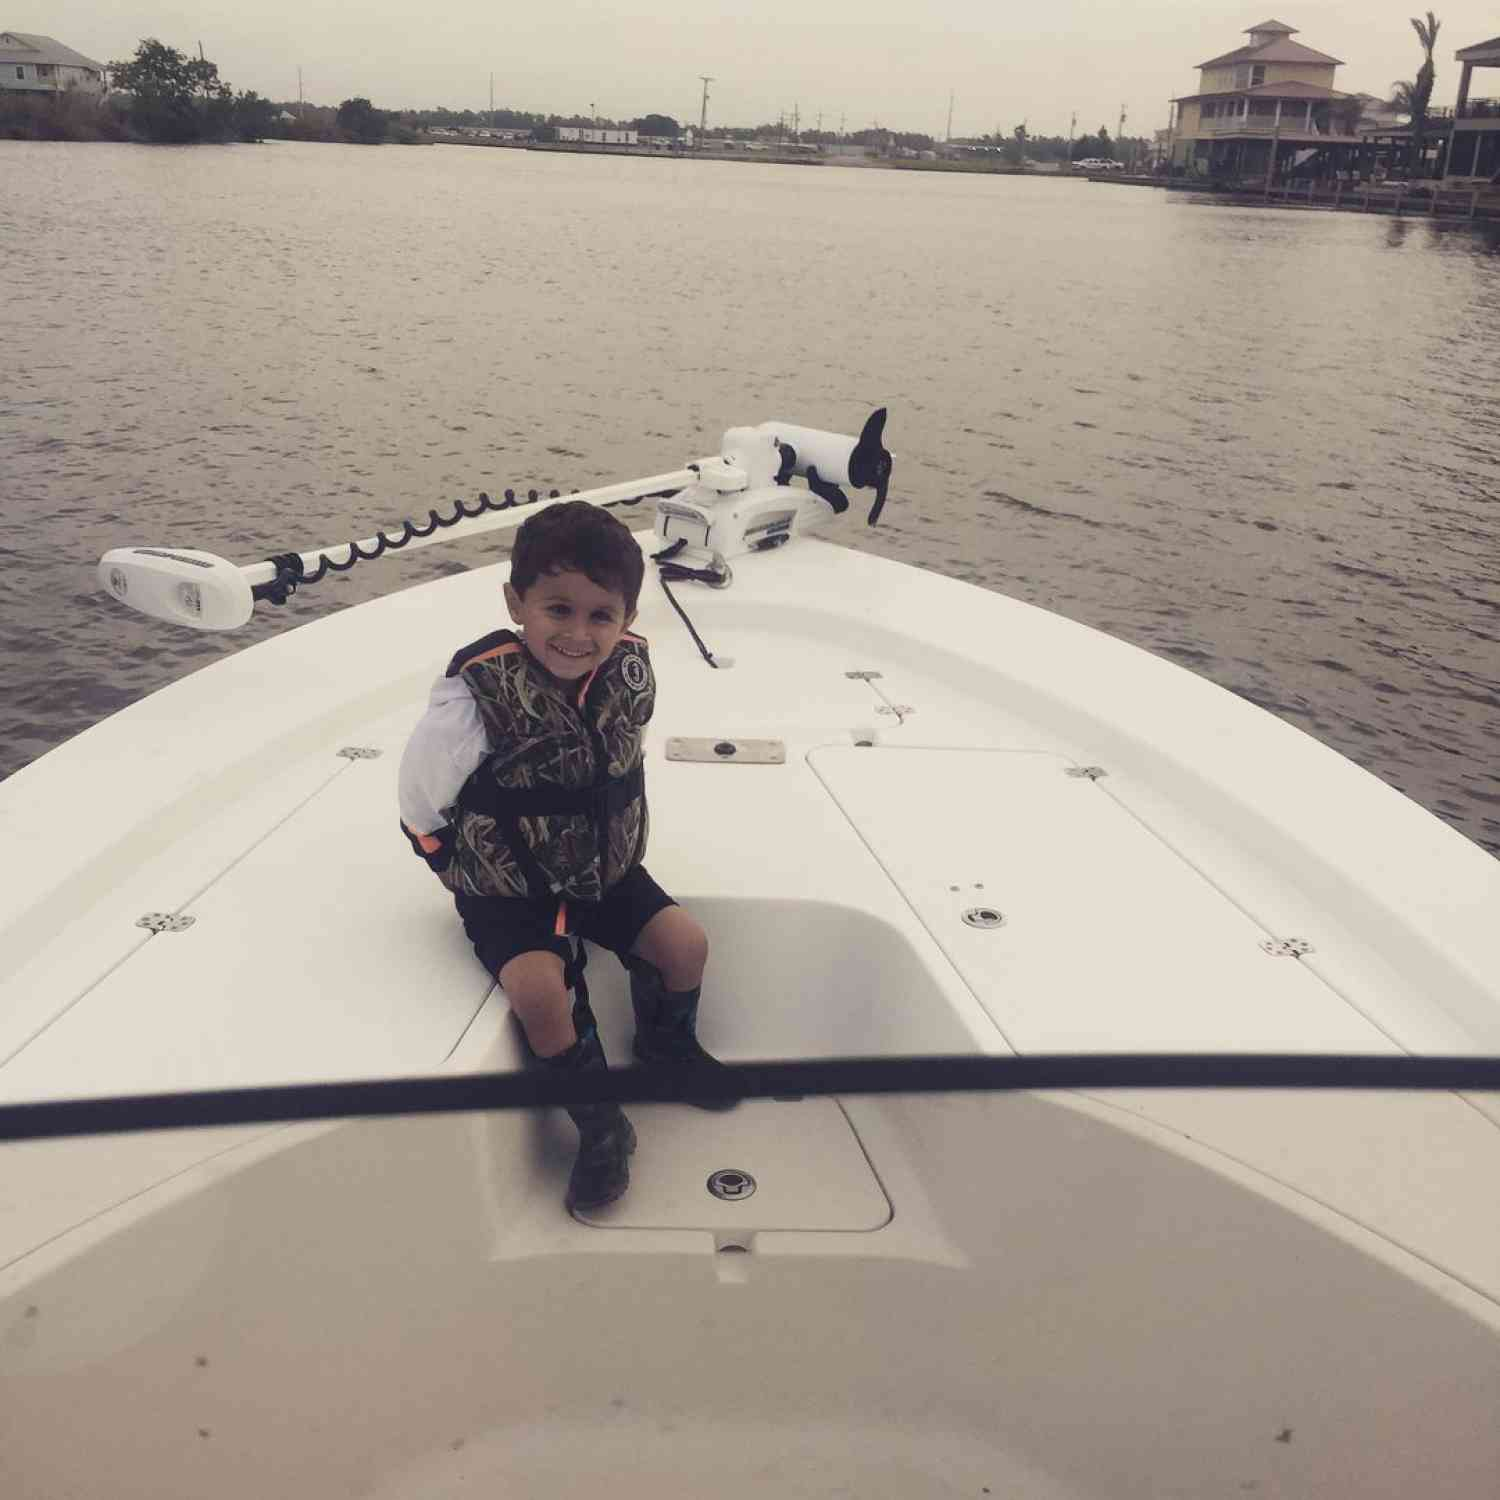 Title: Captain of the Masters 247! - On board their Sportsman Masters 247 Bay Boat - Location: Belle Chasse, LA. Participating in the Photo Contest #SportsmanMay2018